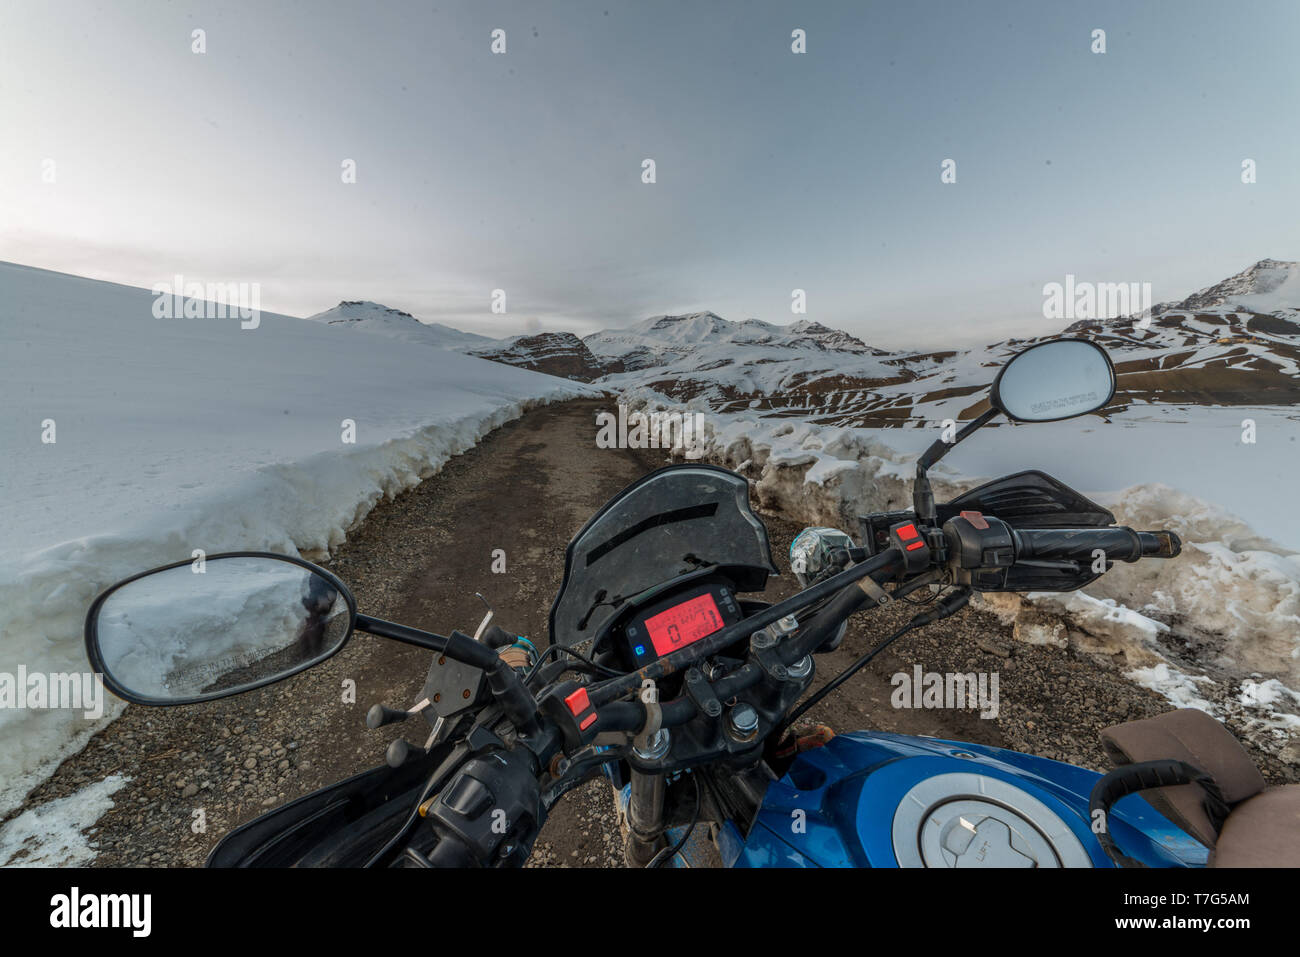 Spiti, Himachal Pradesh, India - March 26, 2019 : Biker at open road in winter in himalayas of india - Stock Image